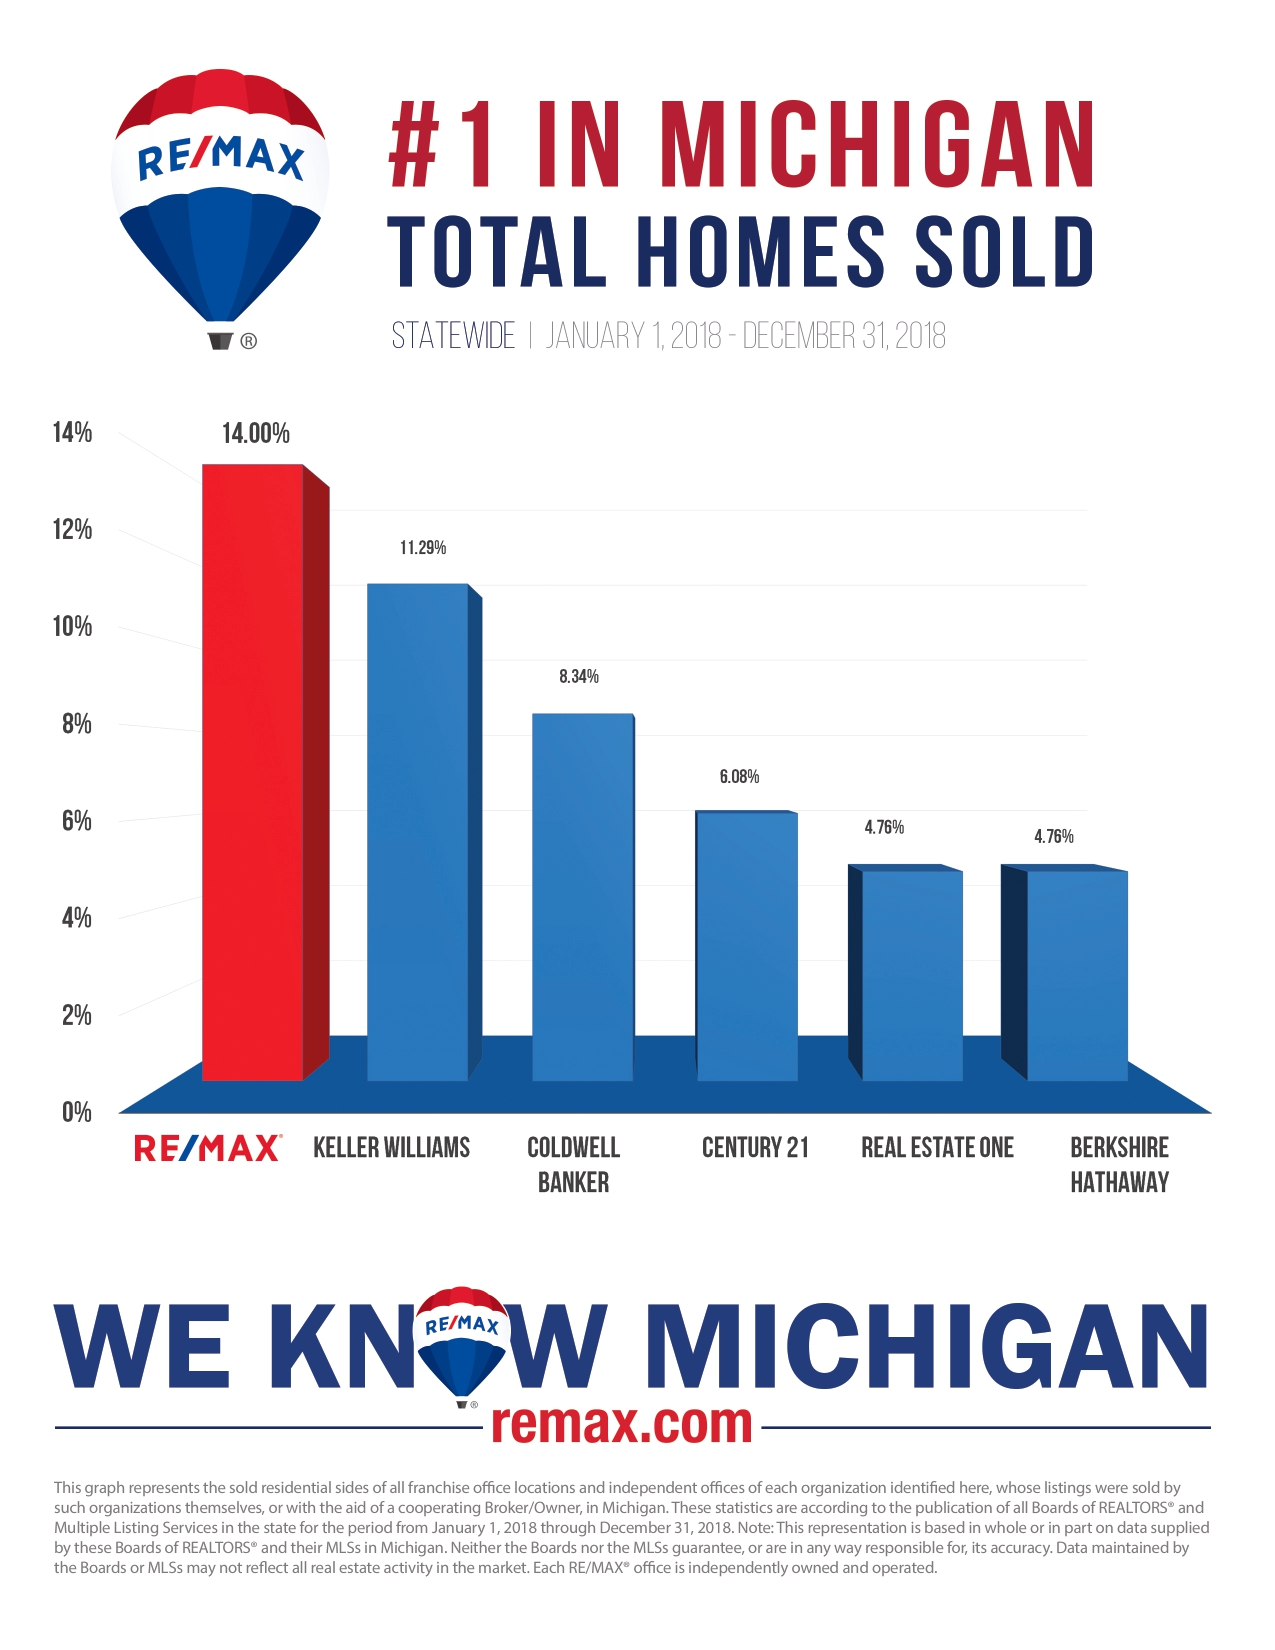 remax-michigan-realtor-lansing-number-one